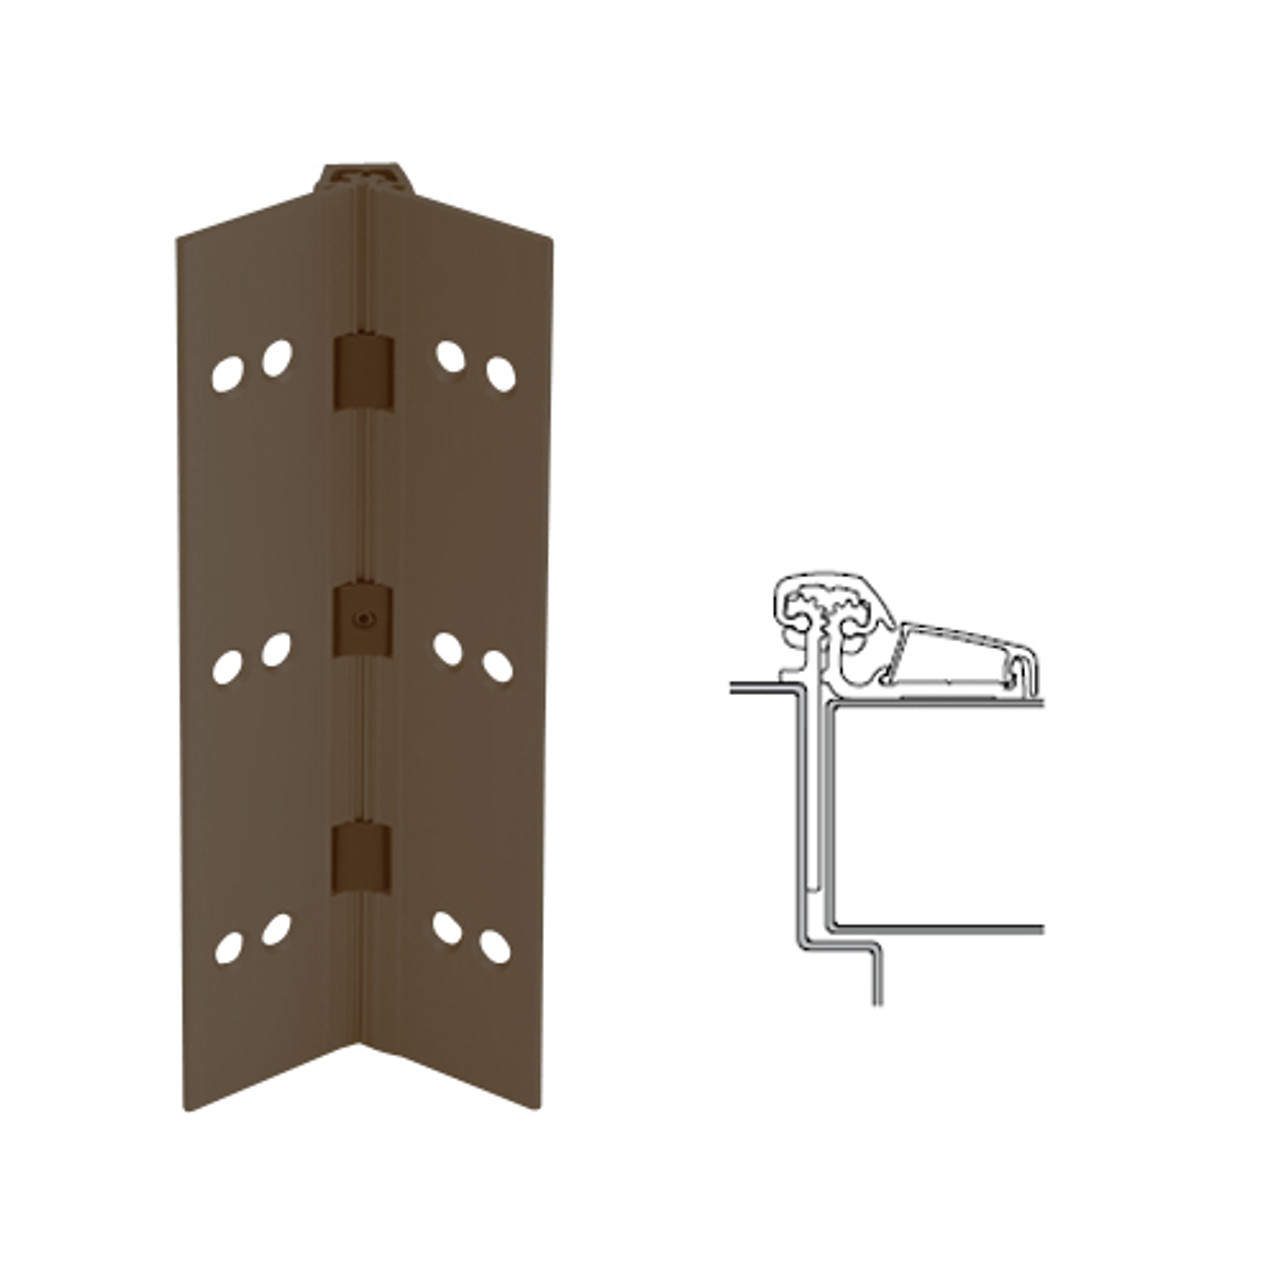 053XY-313AN-120-TFWD IVES Adjustable Half Surface Continuous Geared Hinges with Thread Forming Screws in Dark Bronze Anodized